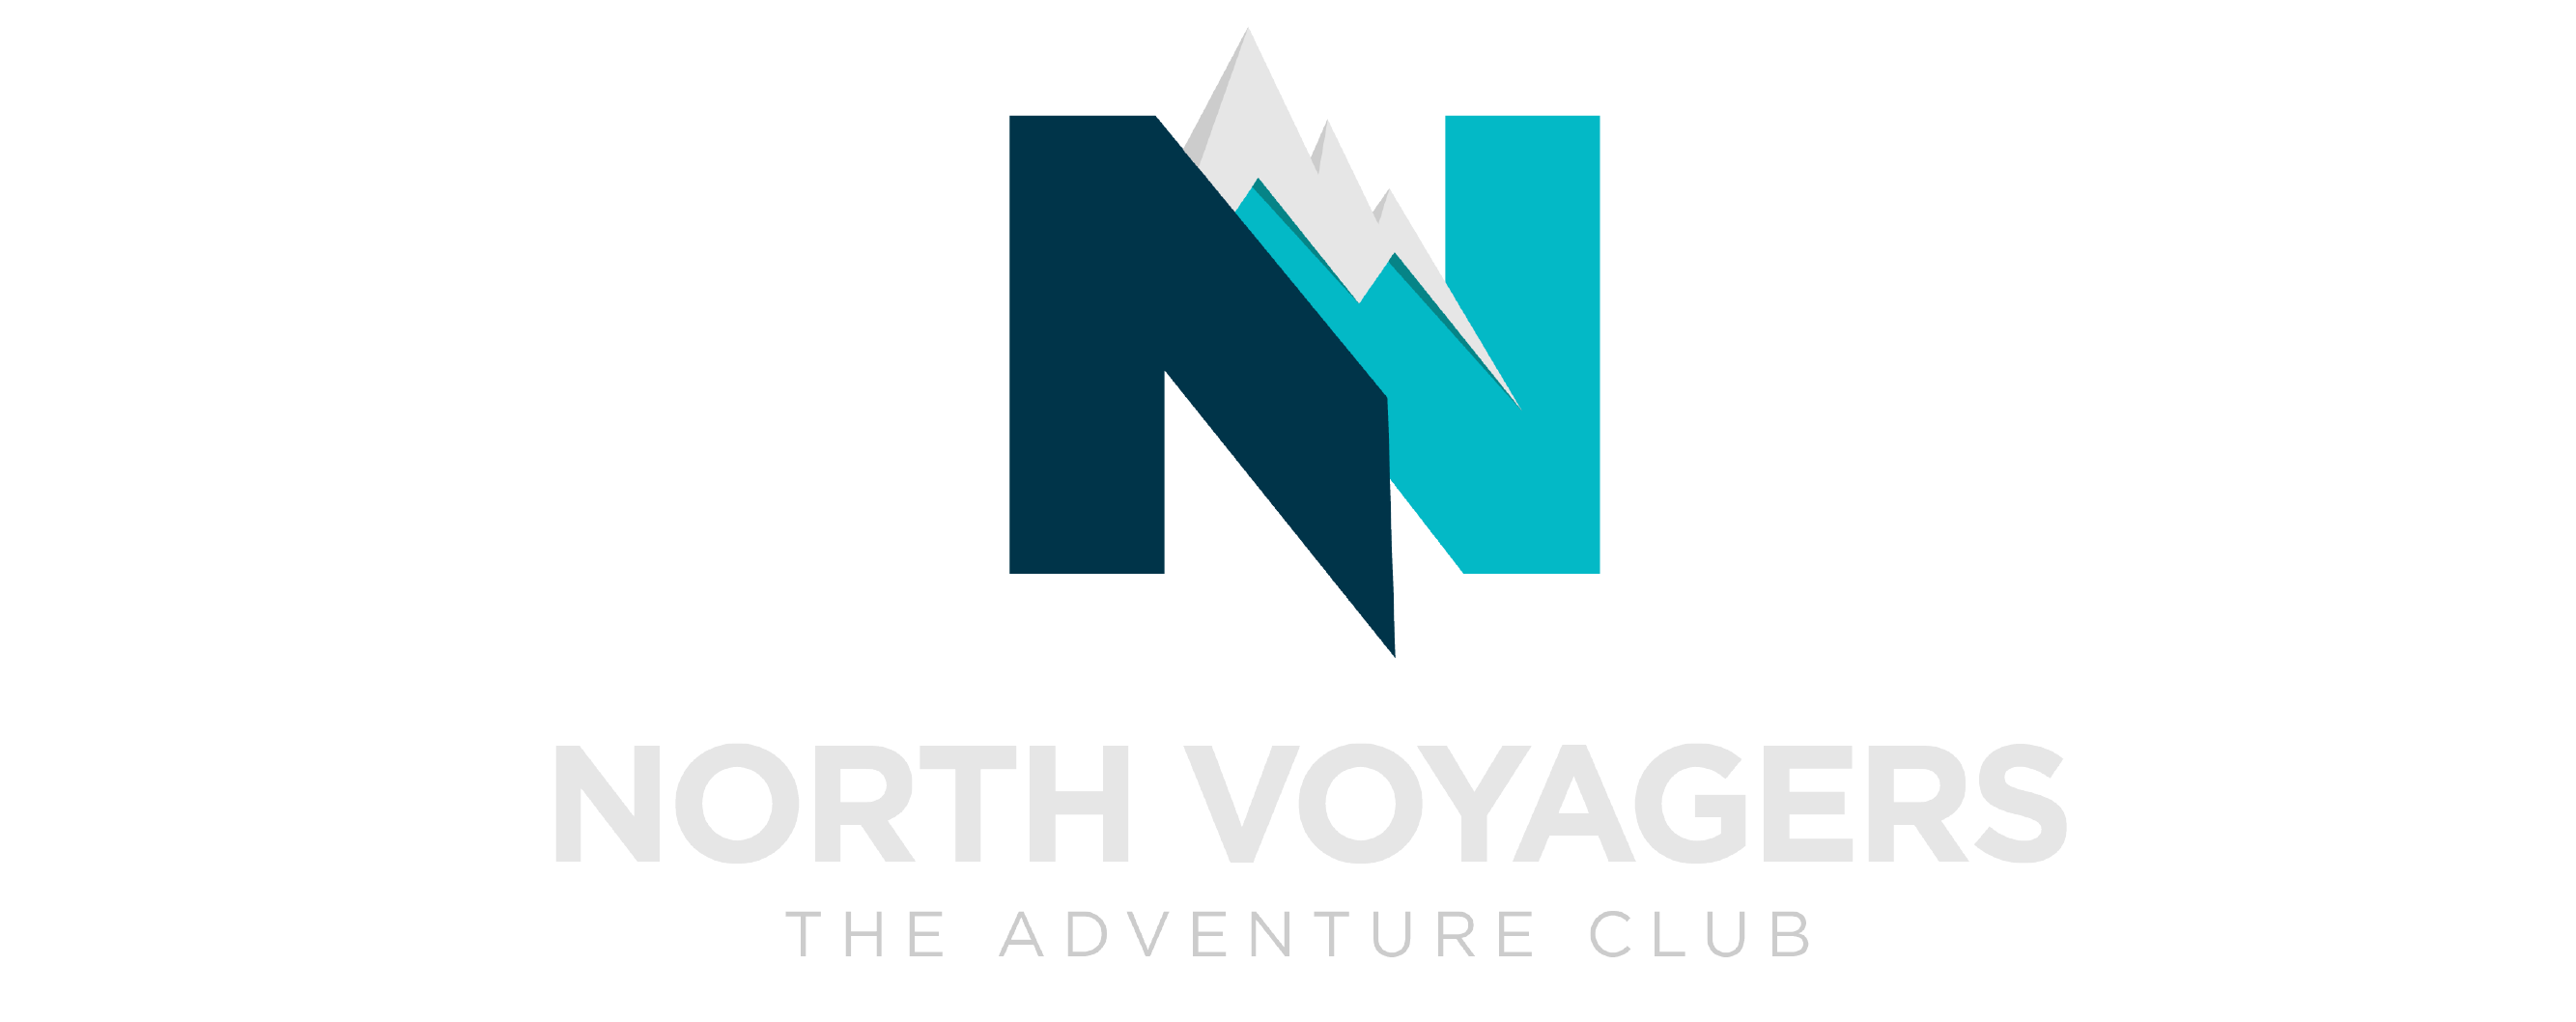 North Voyagers